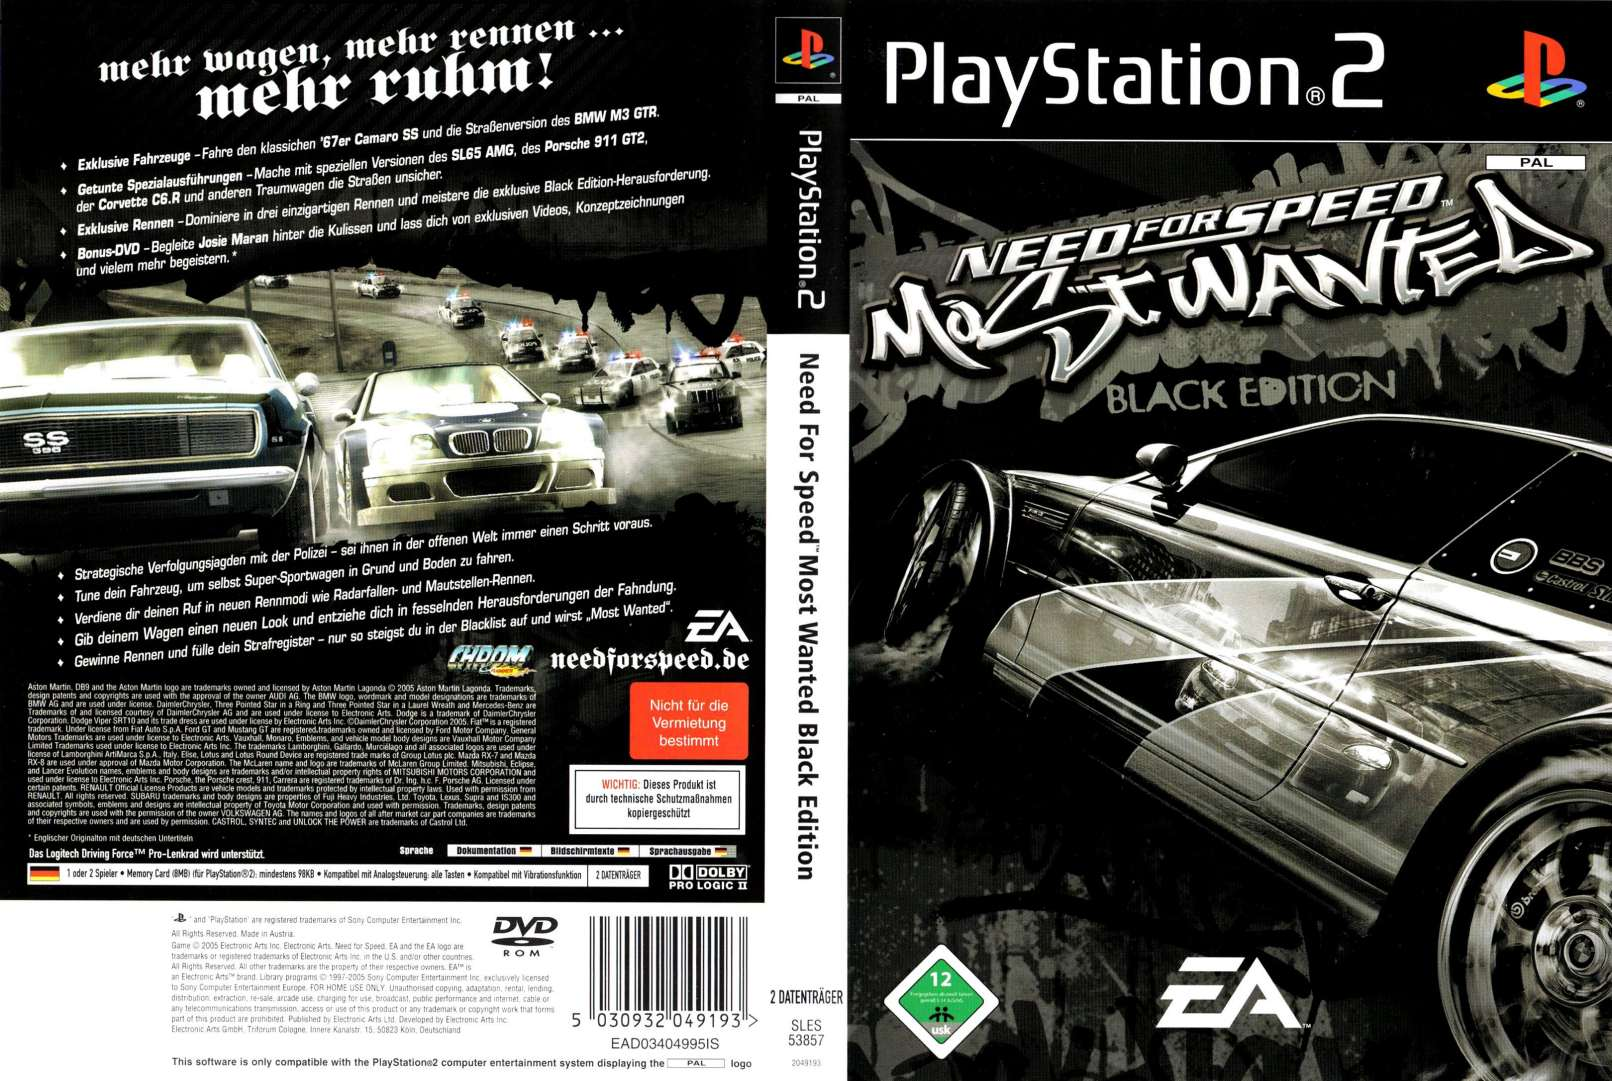 Need For Speed Most Wanted Black Edition D Playstation 2 Covers Cover Century Over 500 000 Album Art Covers For Free